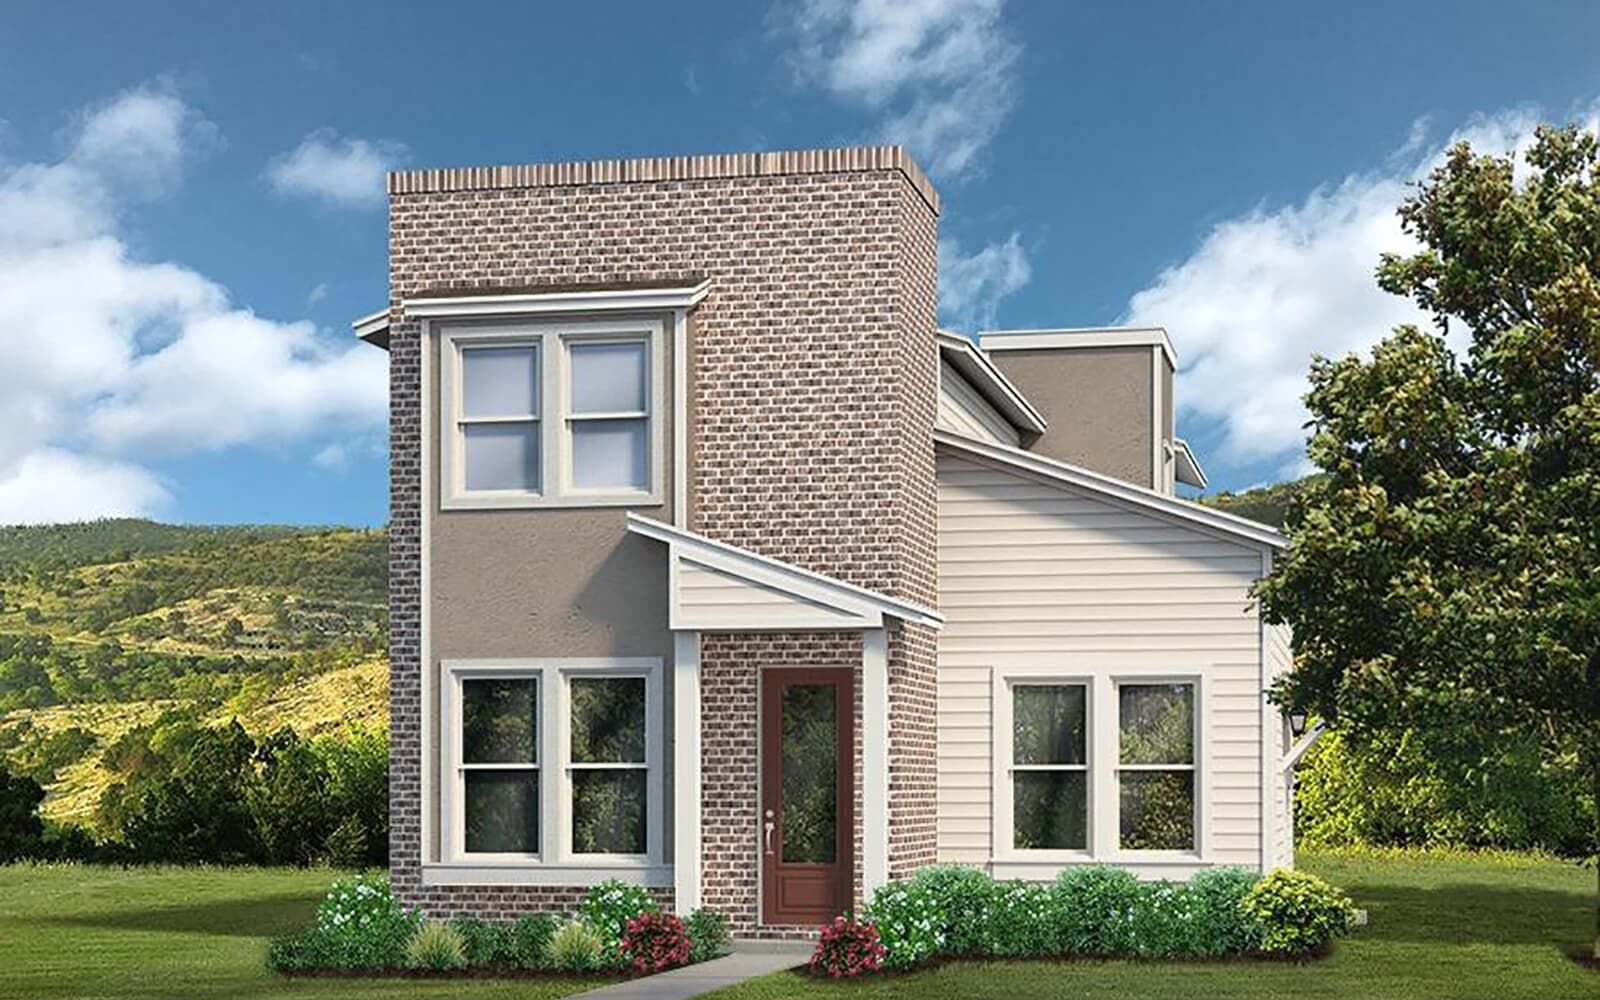 Exterior:floor plan brooklyn a union park austin texas